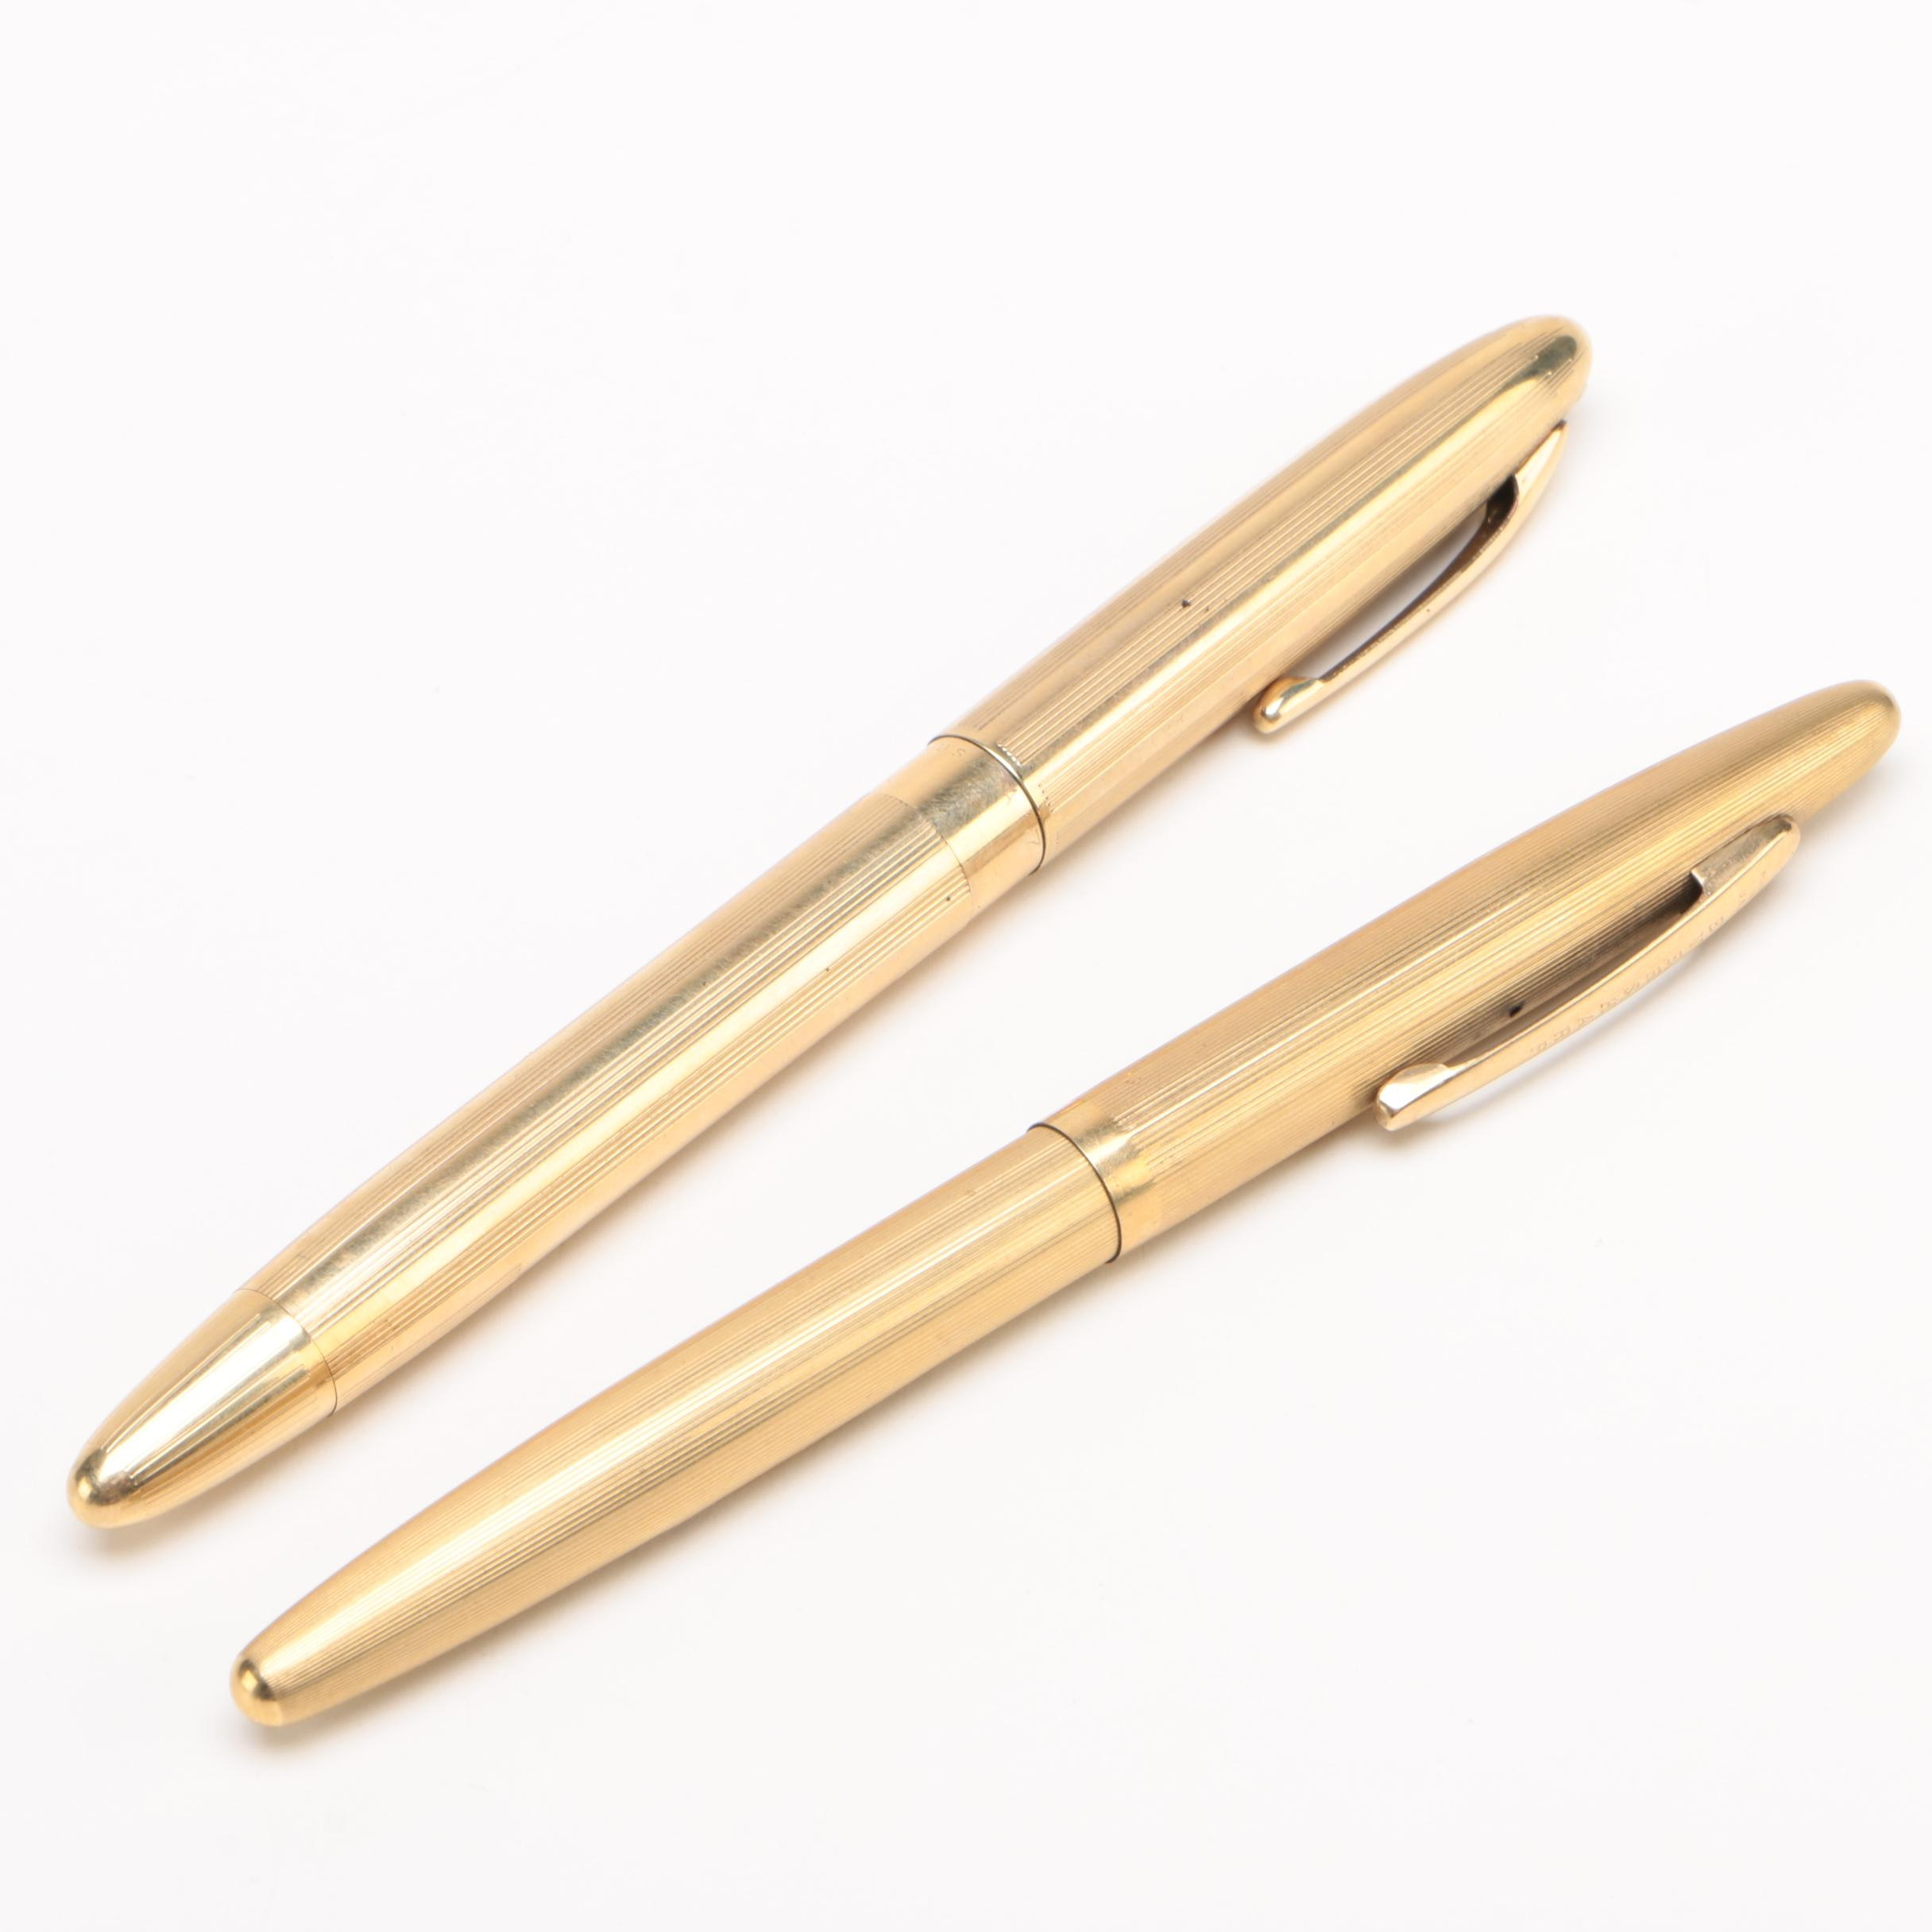 Wahl-Eversharp and Sheaffer's Gold-Plated Fountain Pens